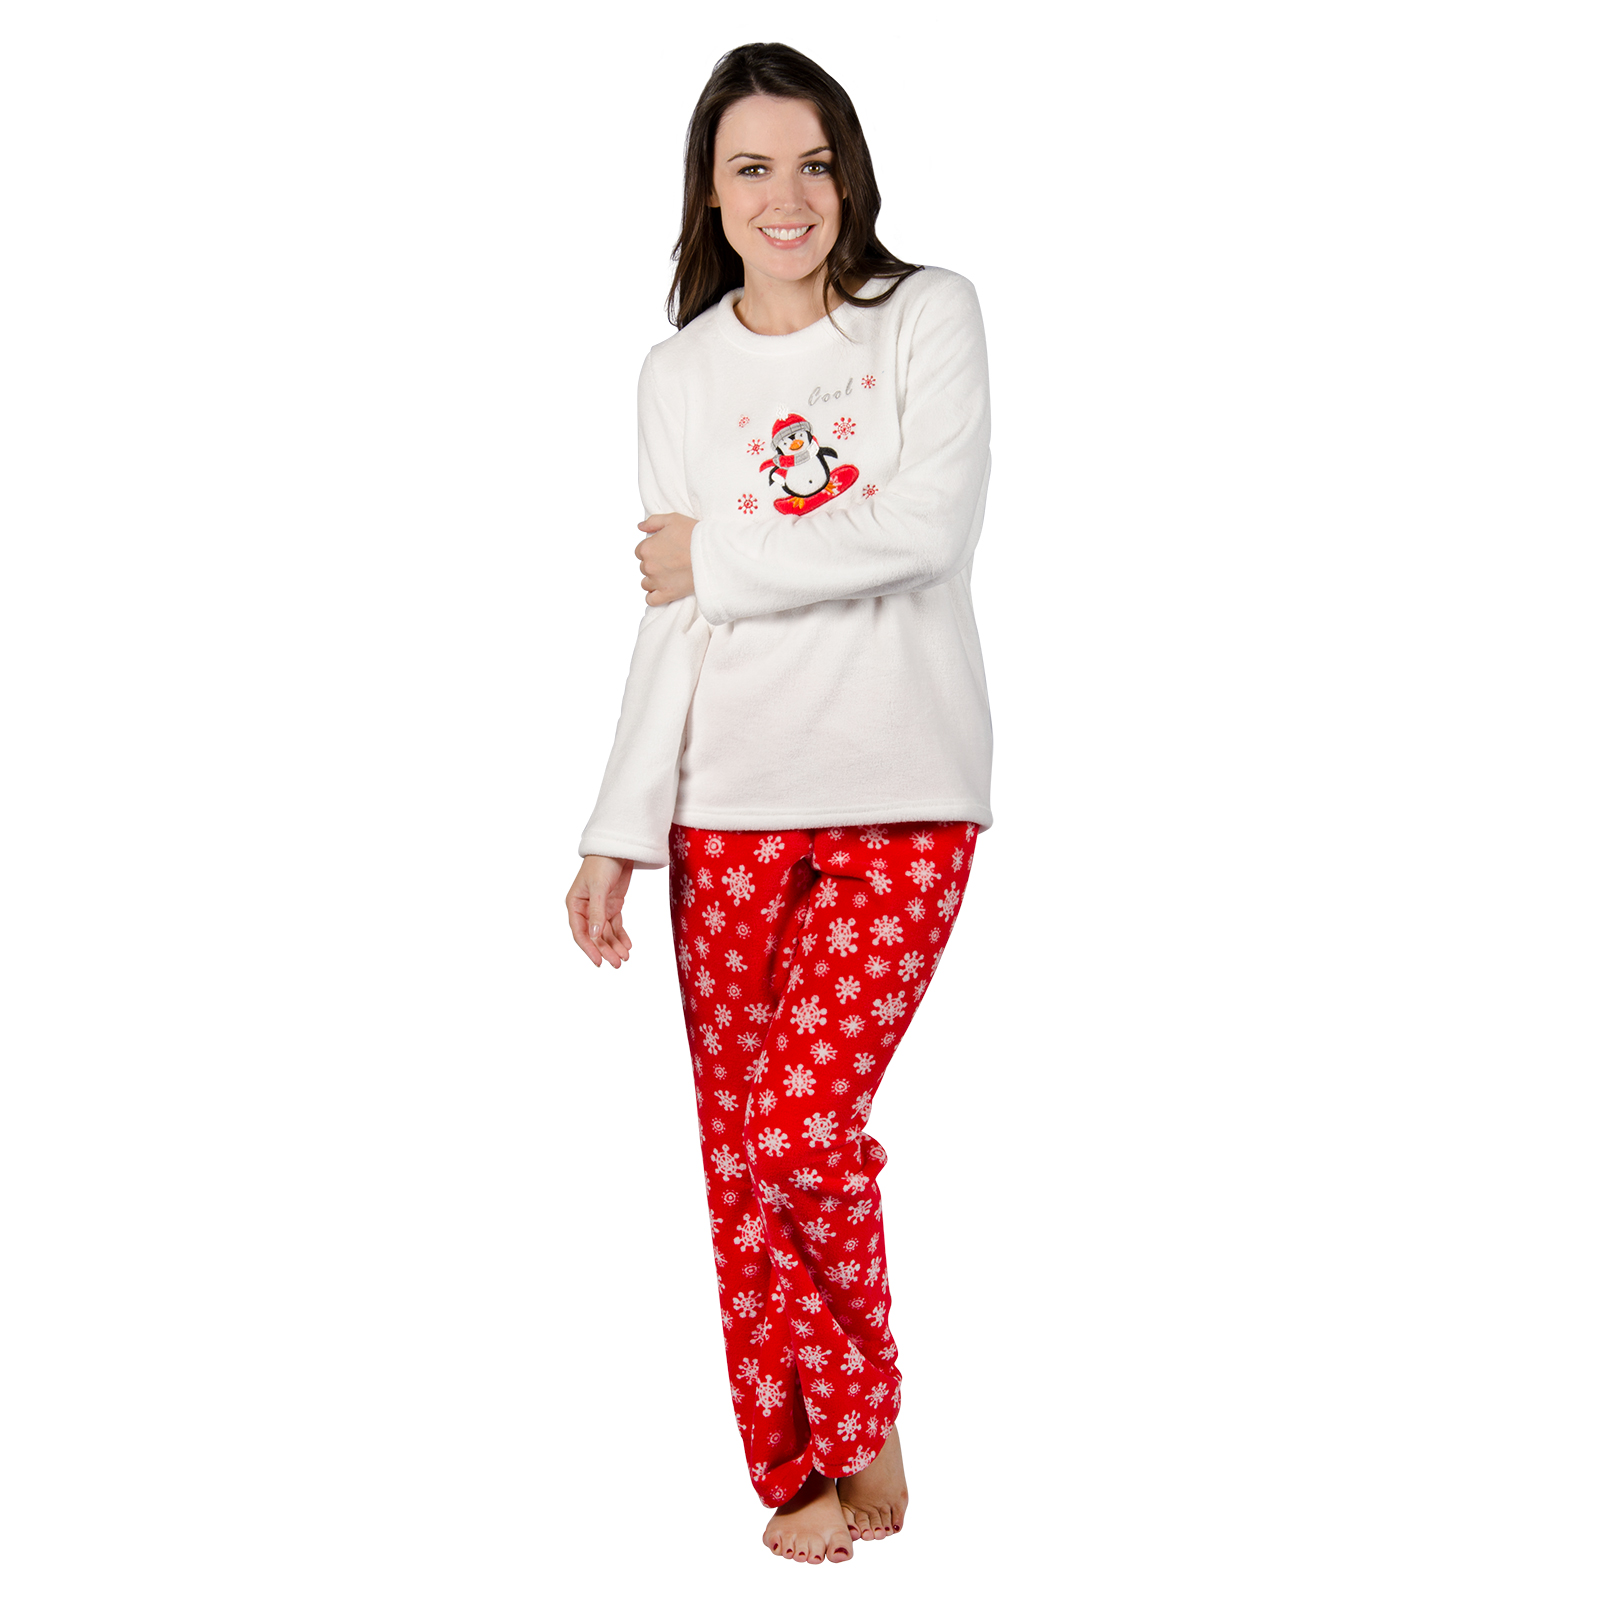 Buy Pyjama tops from the Womens department at Debenhams. You'll find the widest range of Pyjama tops products online and delivered to your door. Shop today!